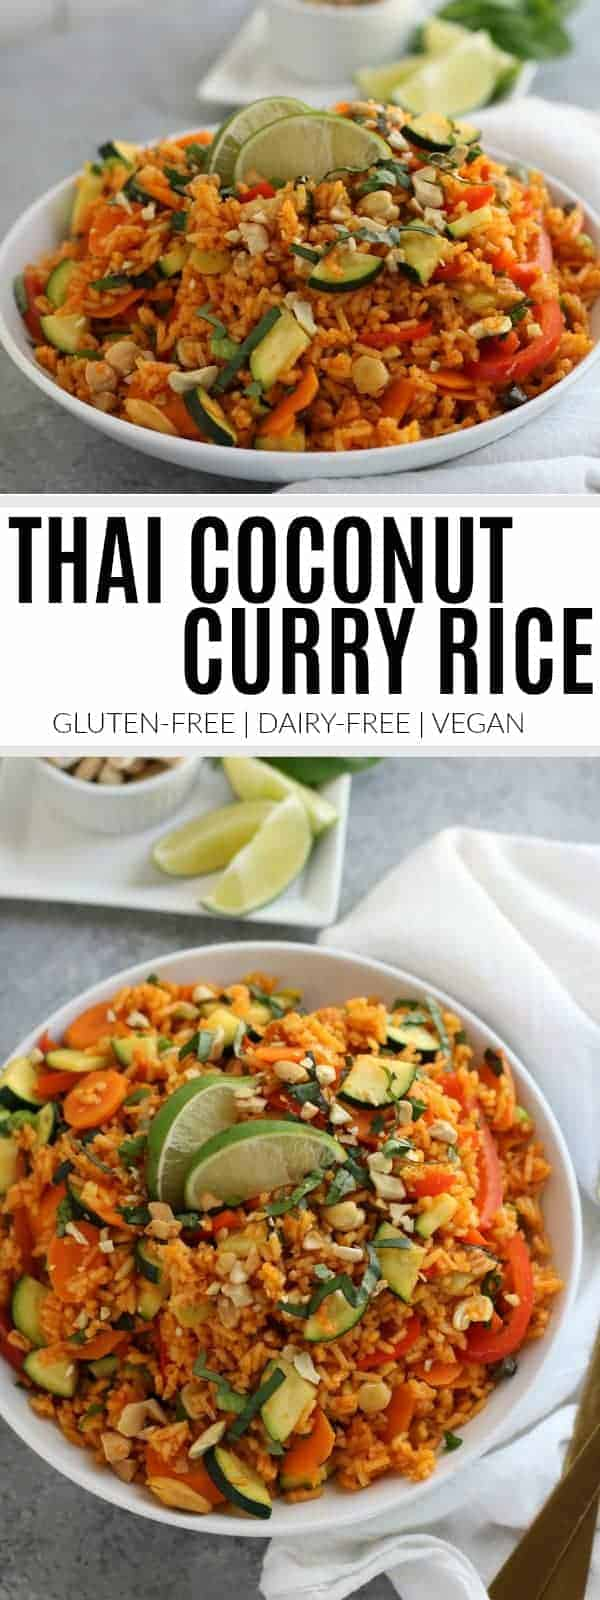 pinterest image for Thai coconut curry rice